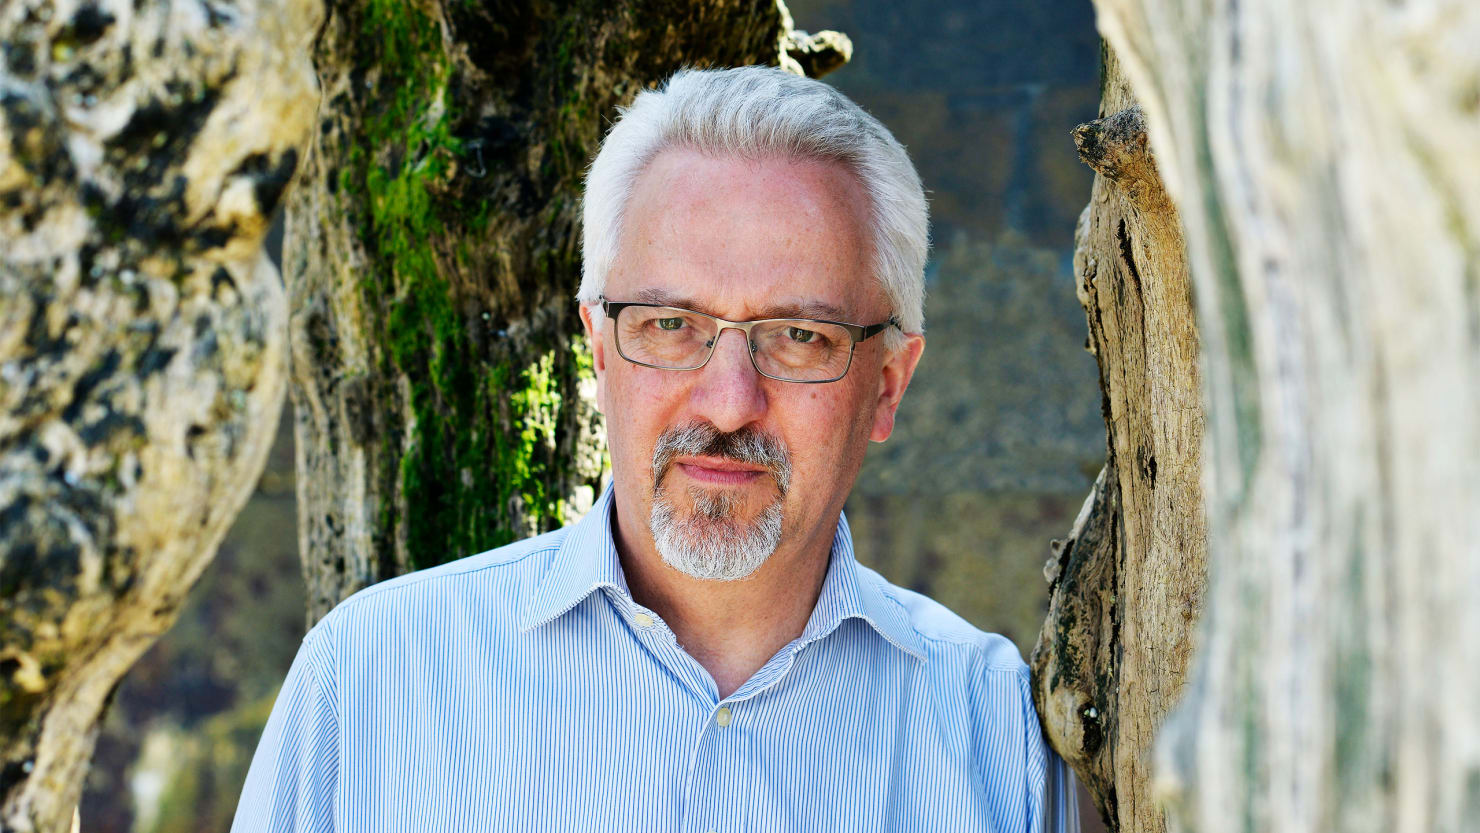 How Alan Hollinghurst Helped Make 'Gay Literature' Mainstream